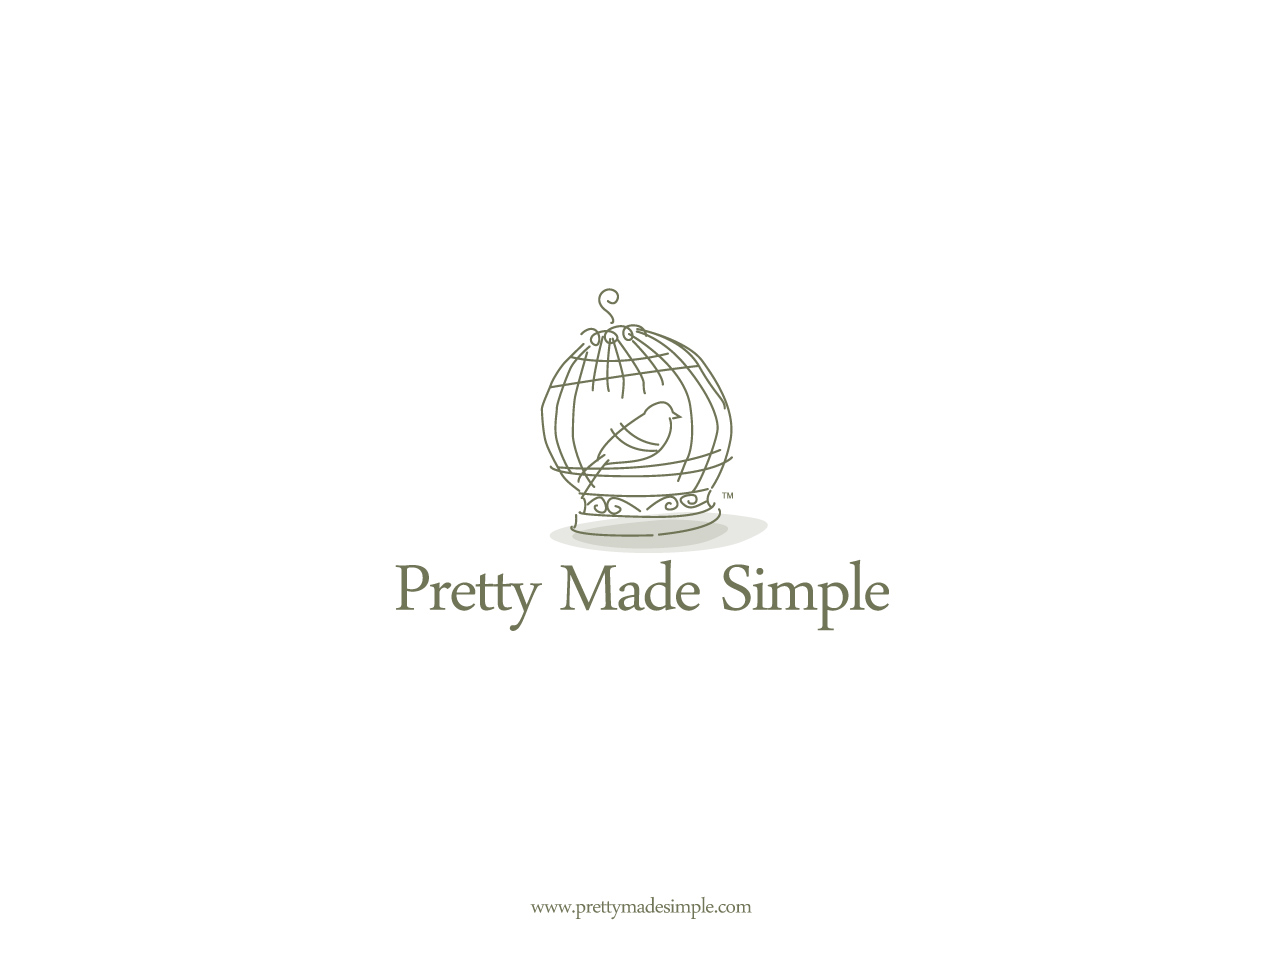 Logo Design by jpbituin - Entry No. 40 in the Logo Design Contest Pretty Made Simple Logo Design.